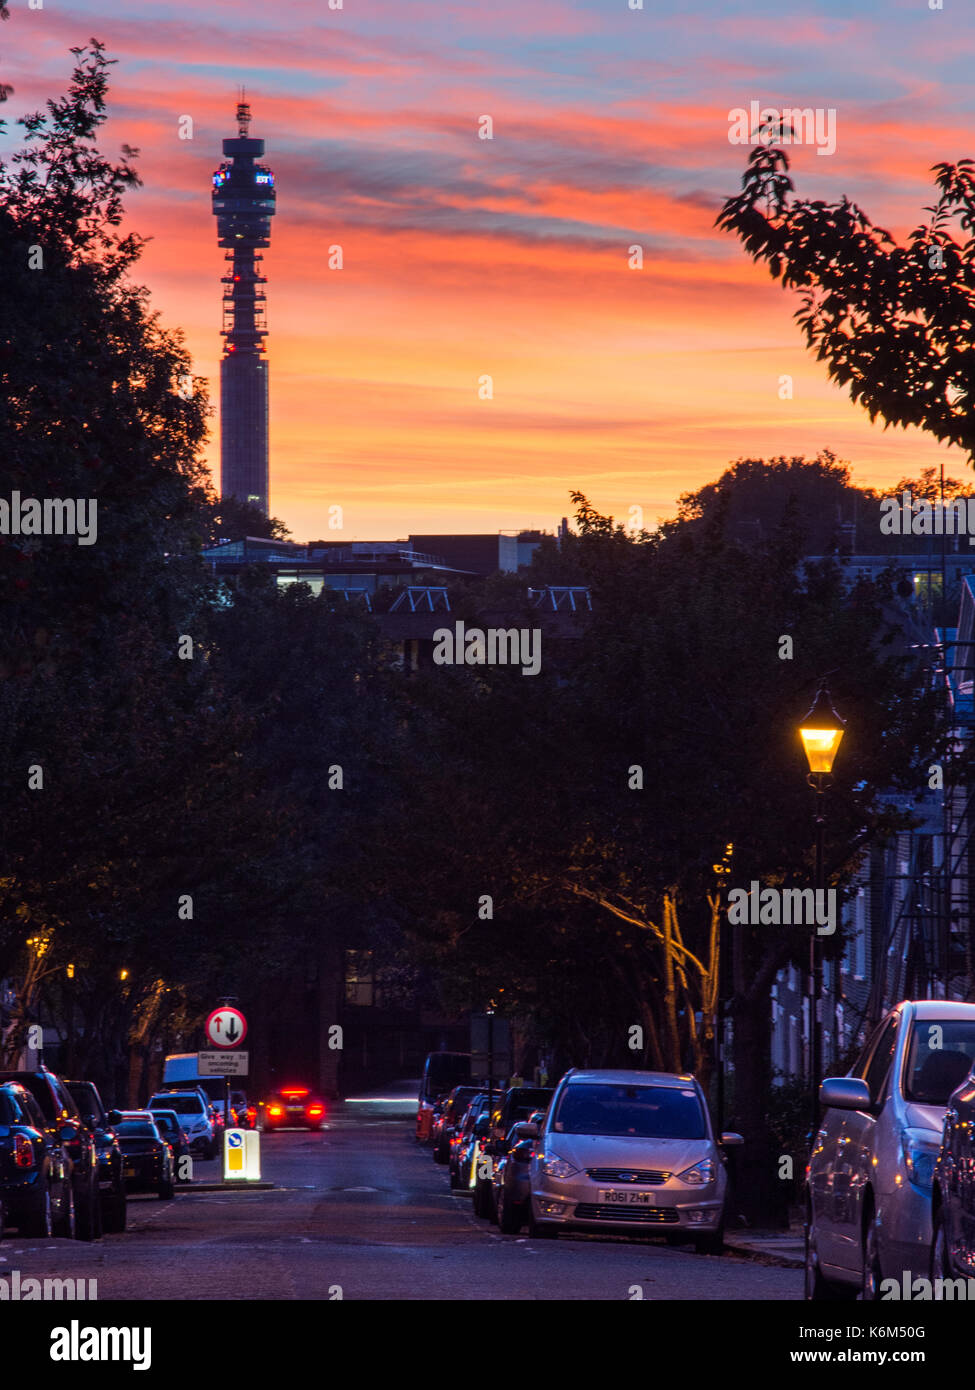 London, England, UK - October 18, 2016: The BT Tower is silhouetted against the sunset viewed from Wharton Street Stock Photo